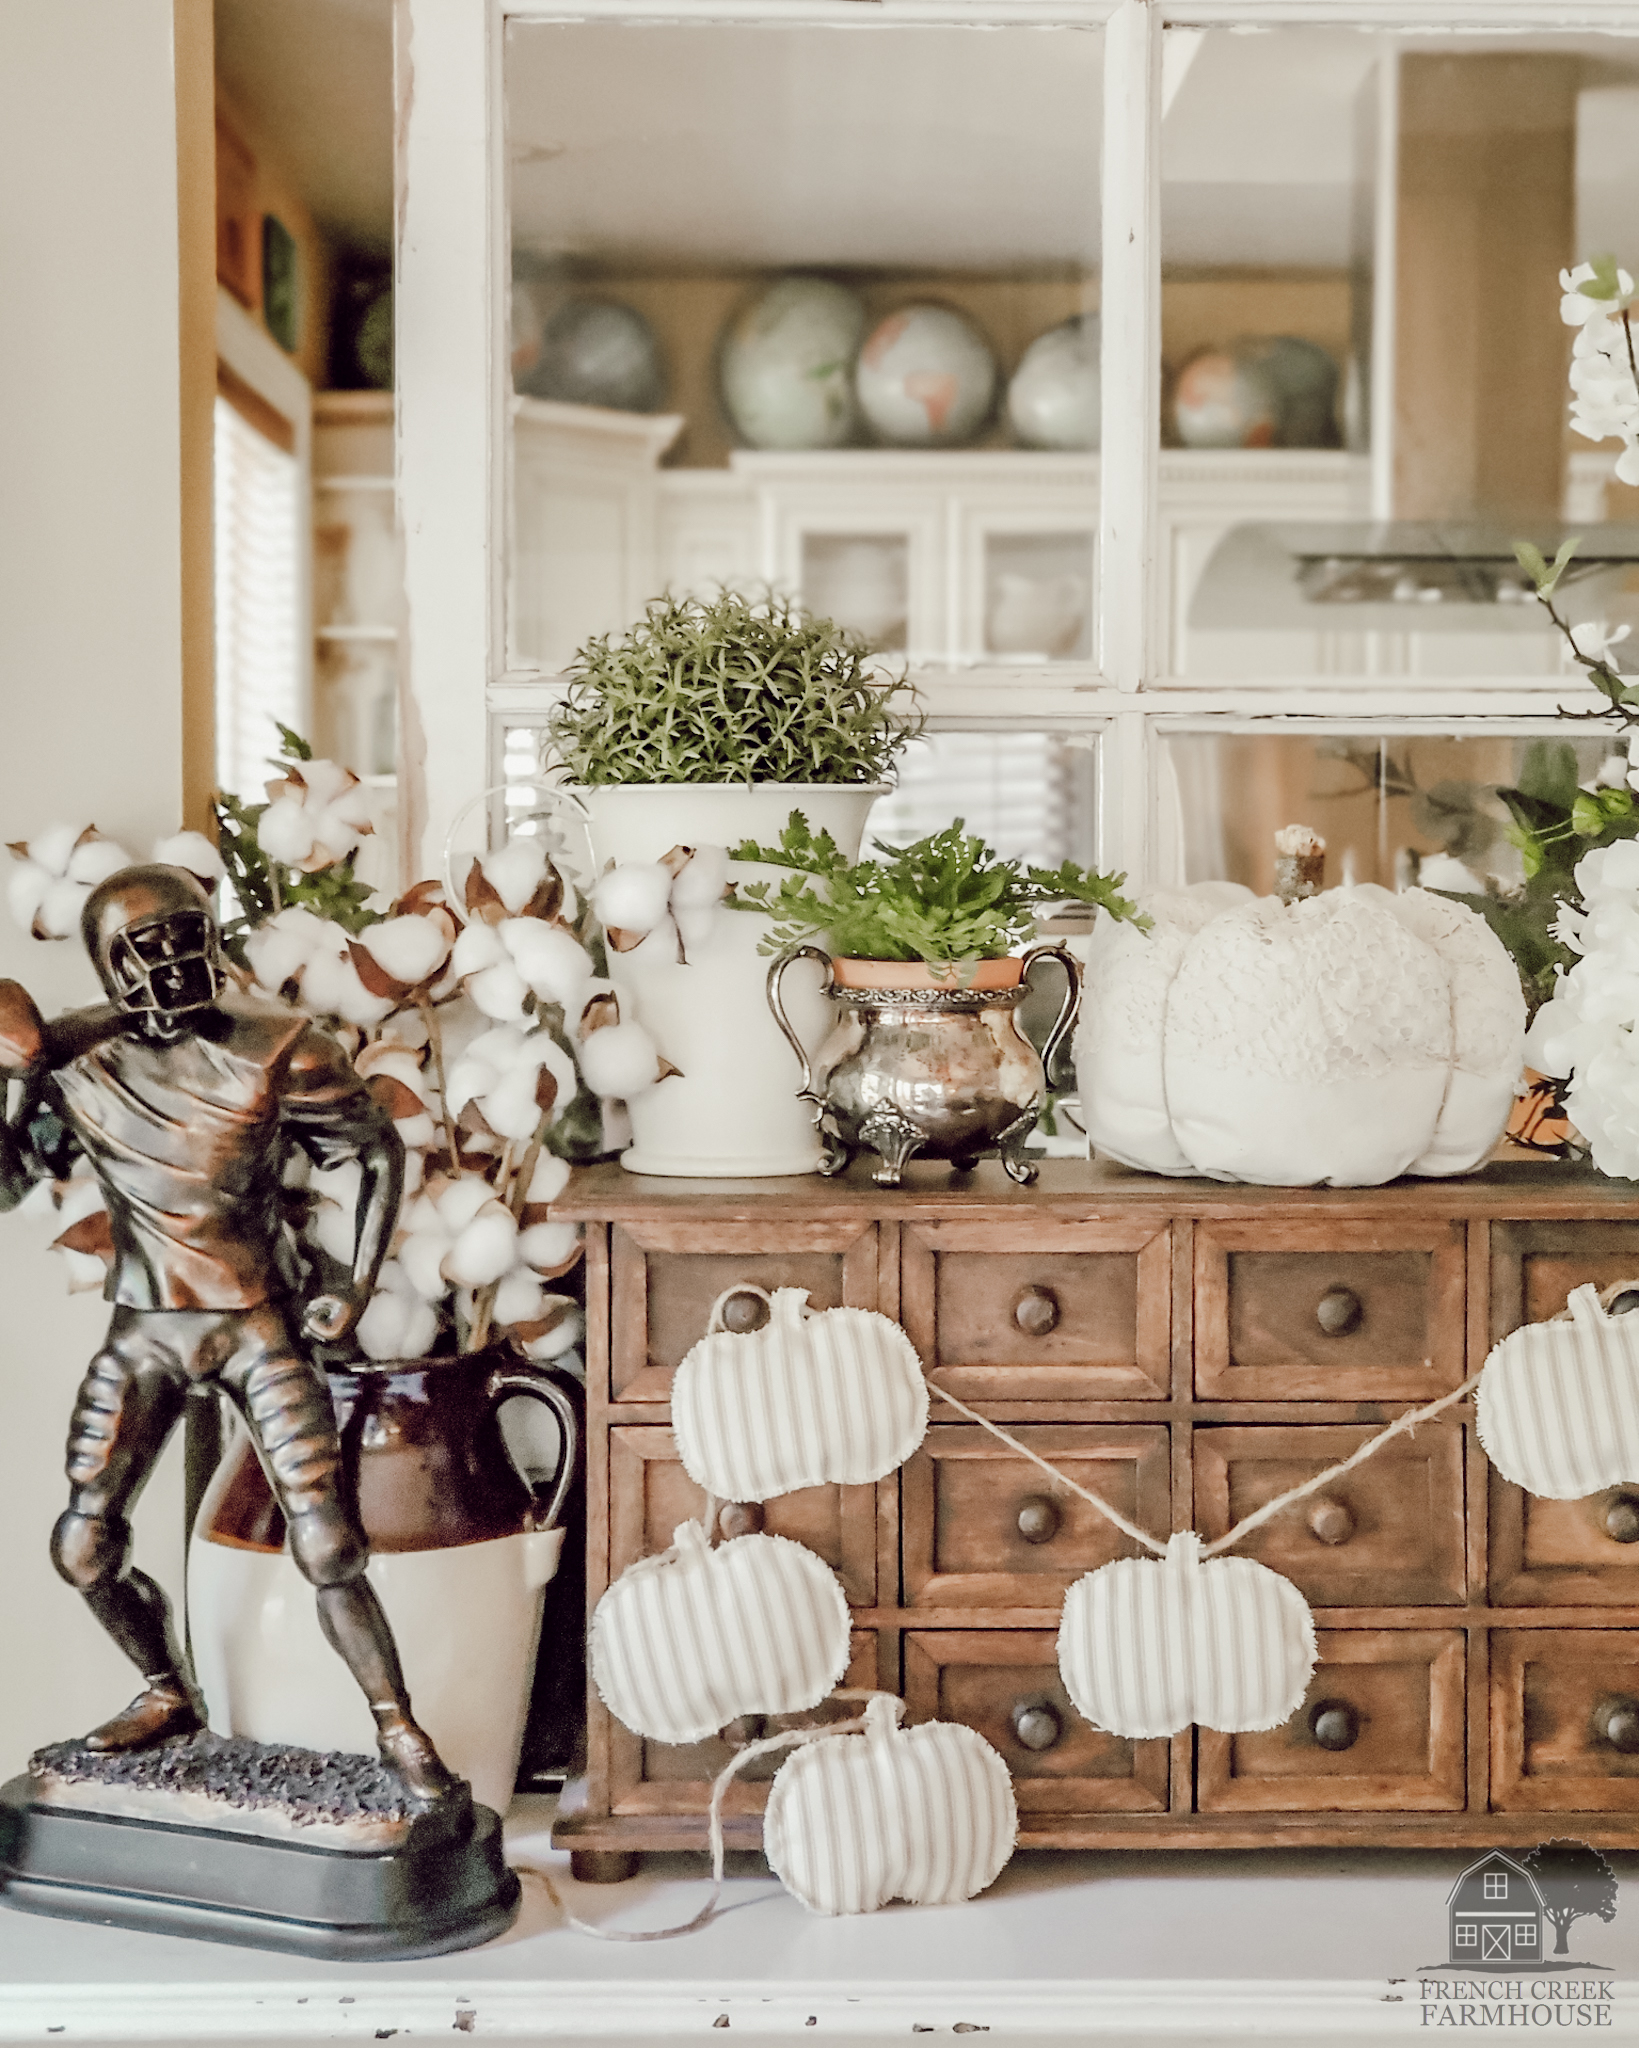 Football, pumpkins, and wood tones are perfect for fall